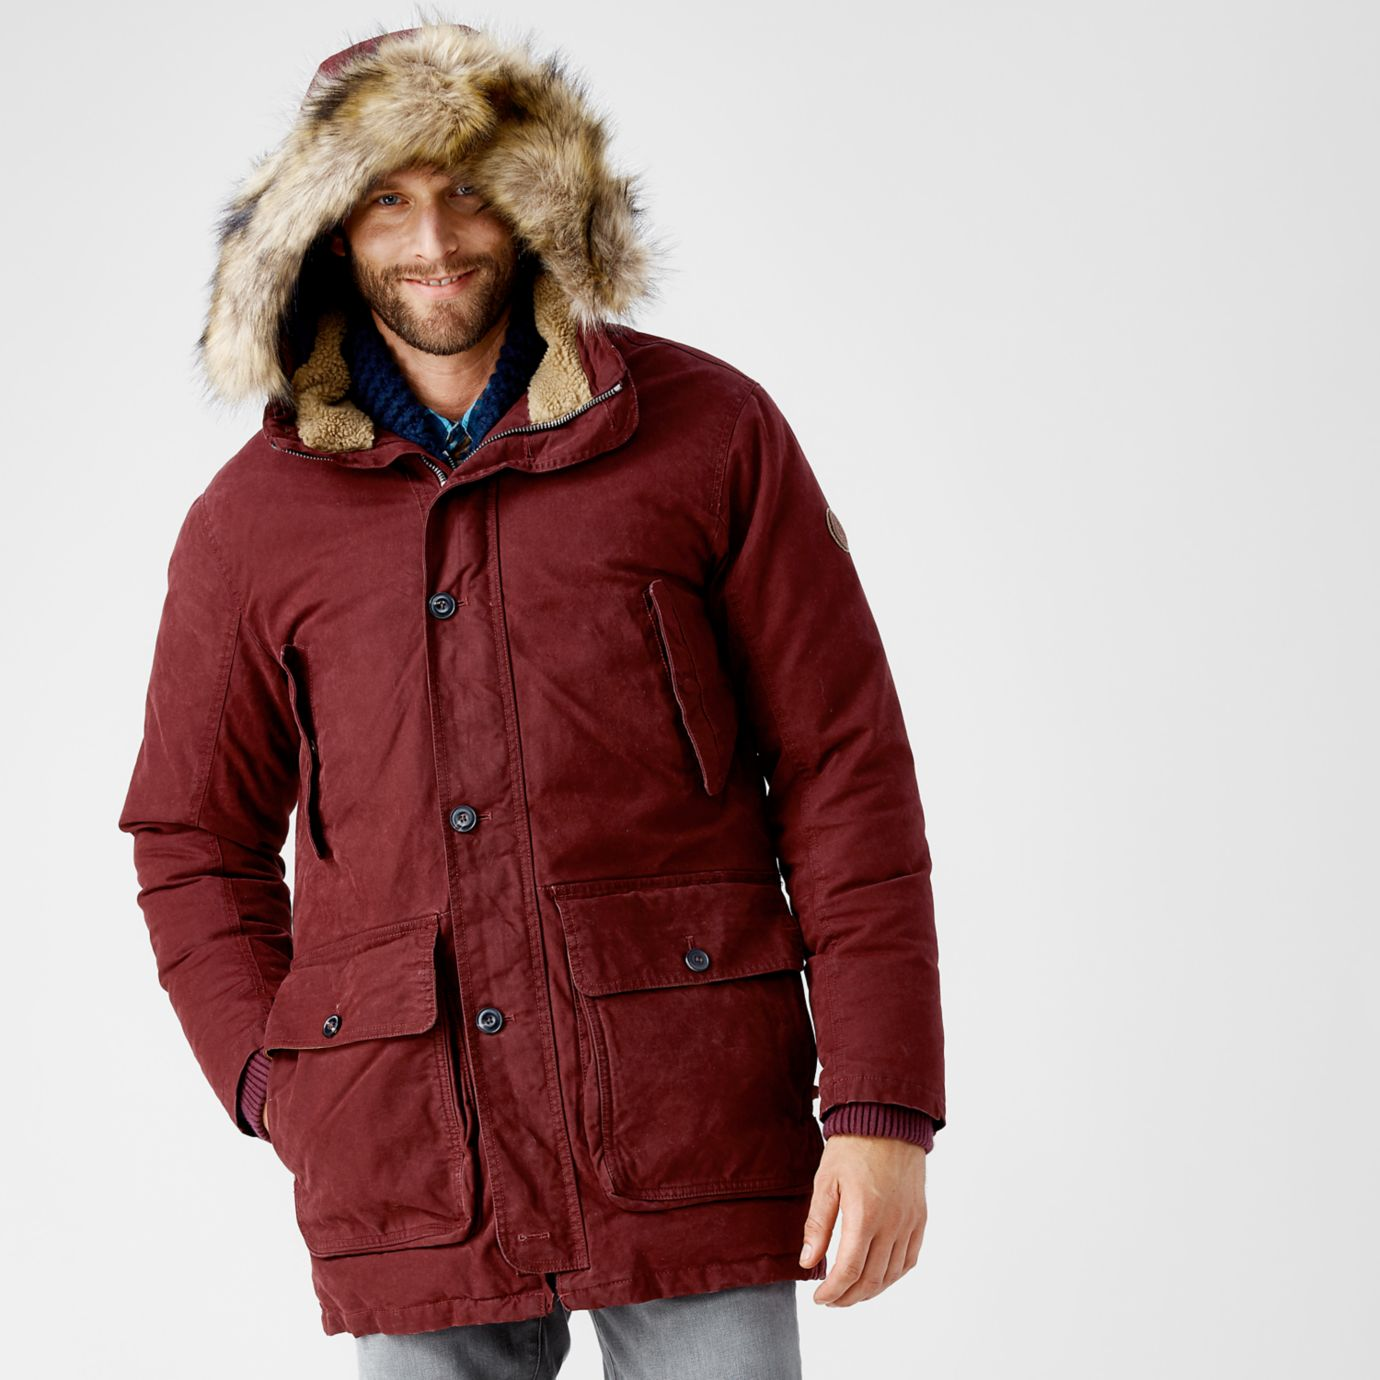 Timberland | Men's Down Jackets